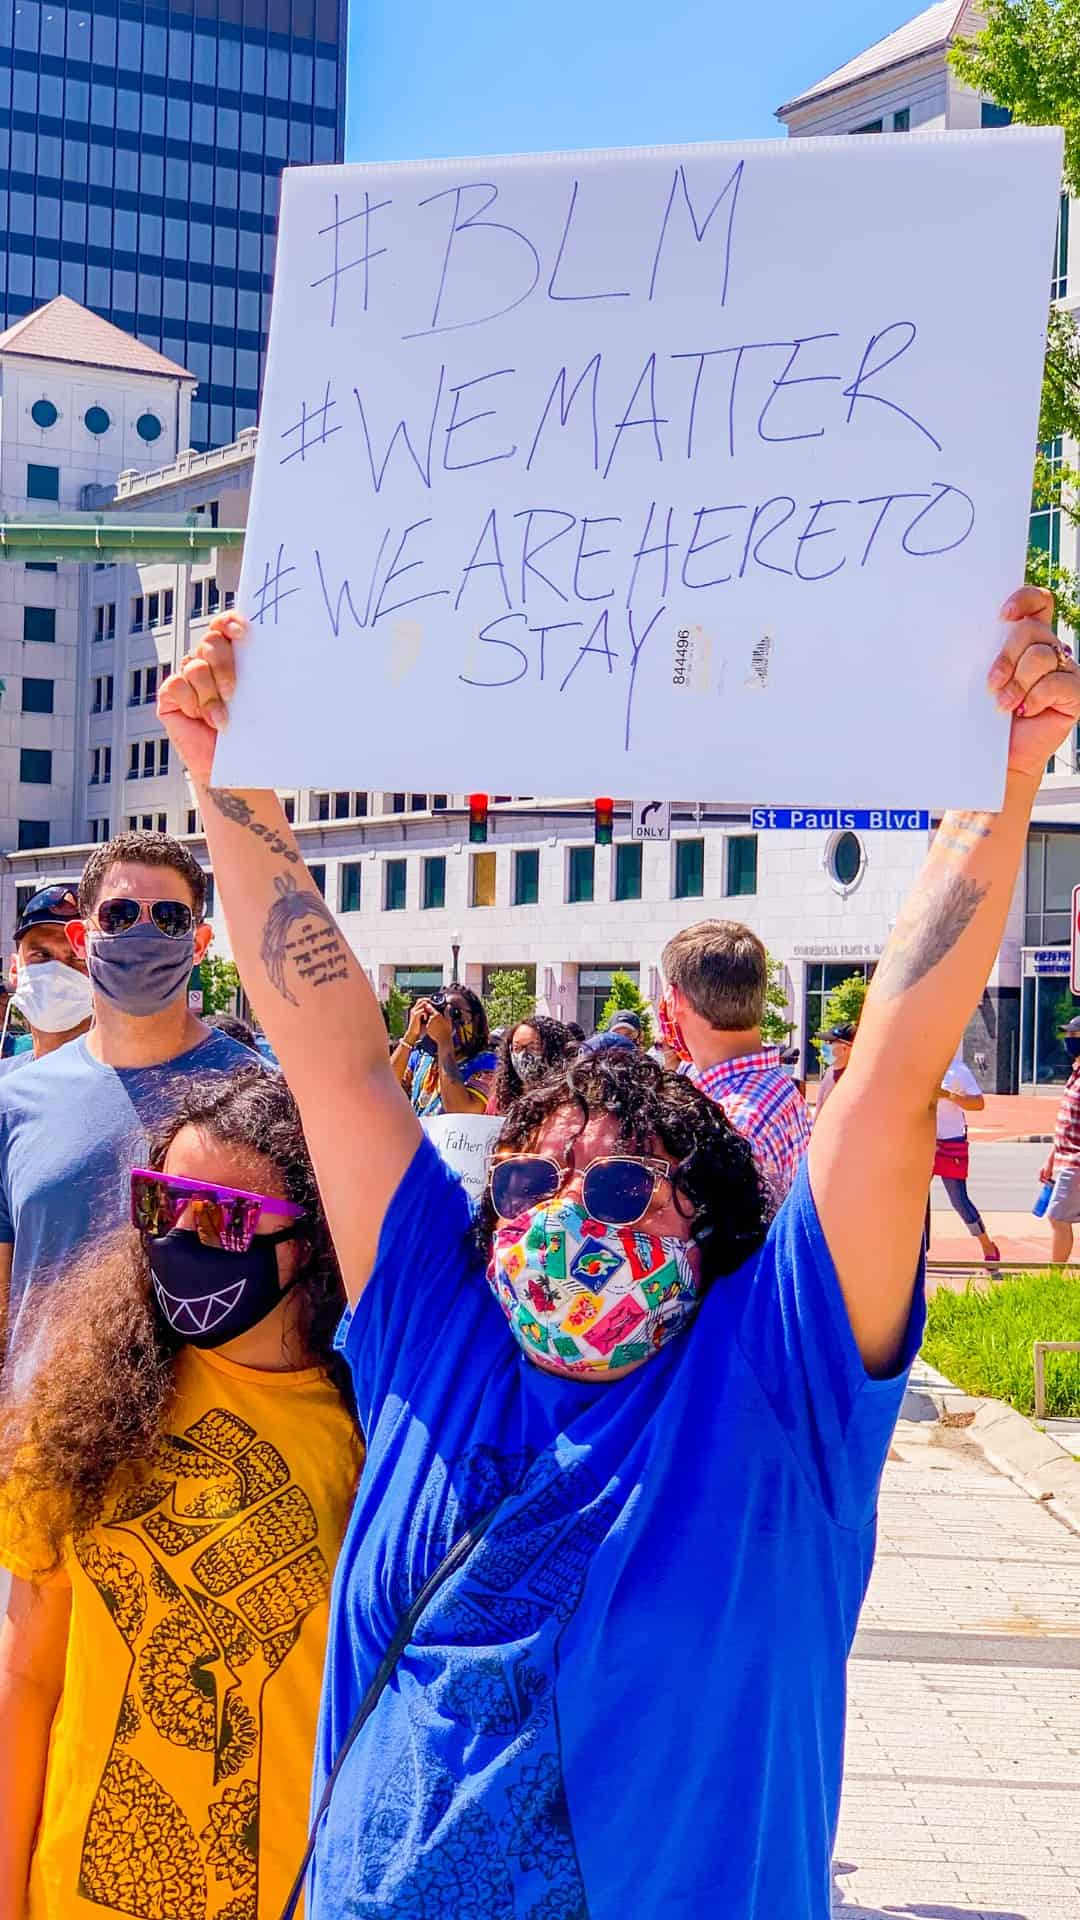 BLM we are here to stay protest sign